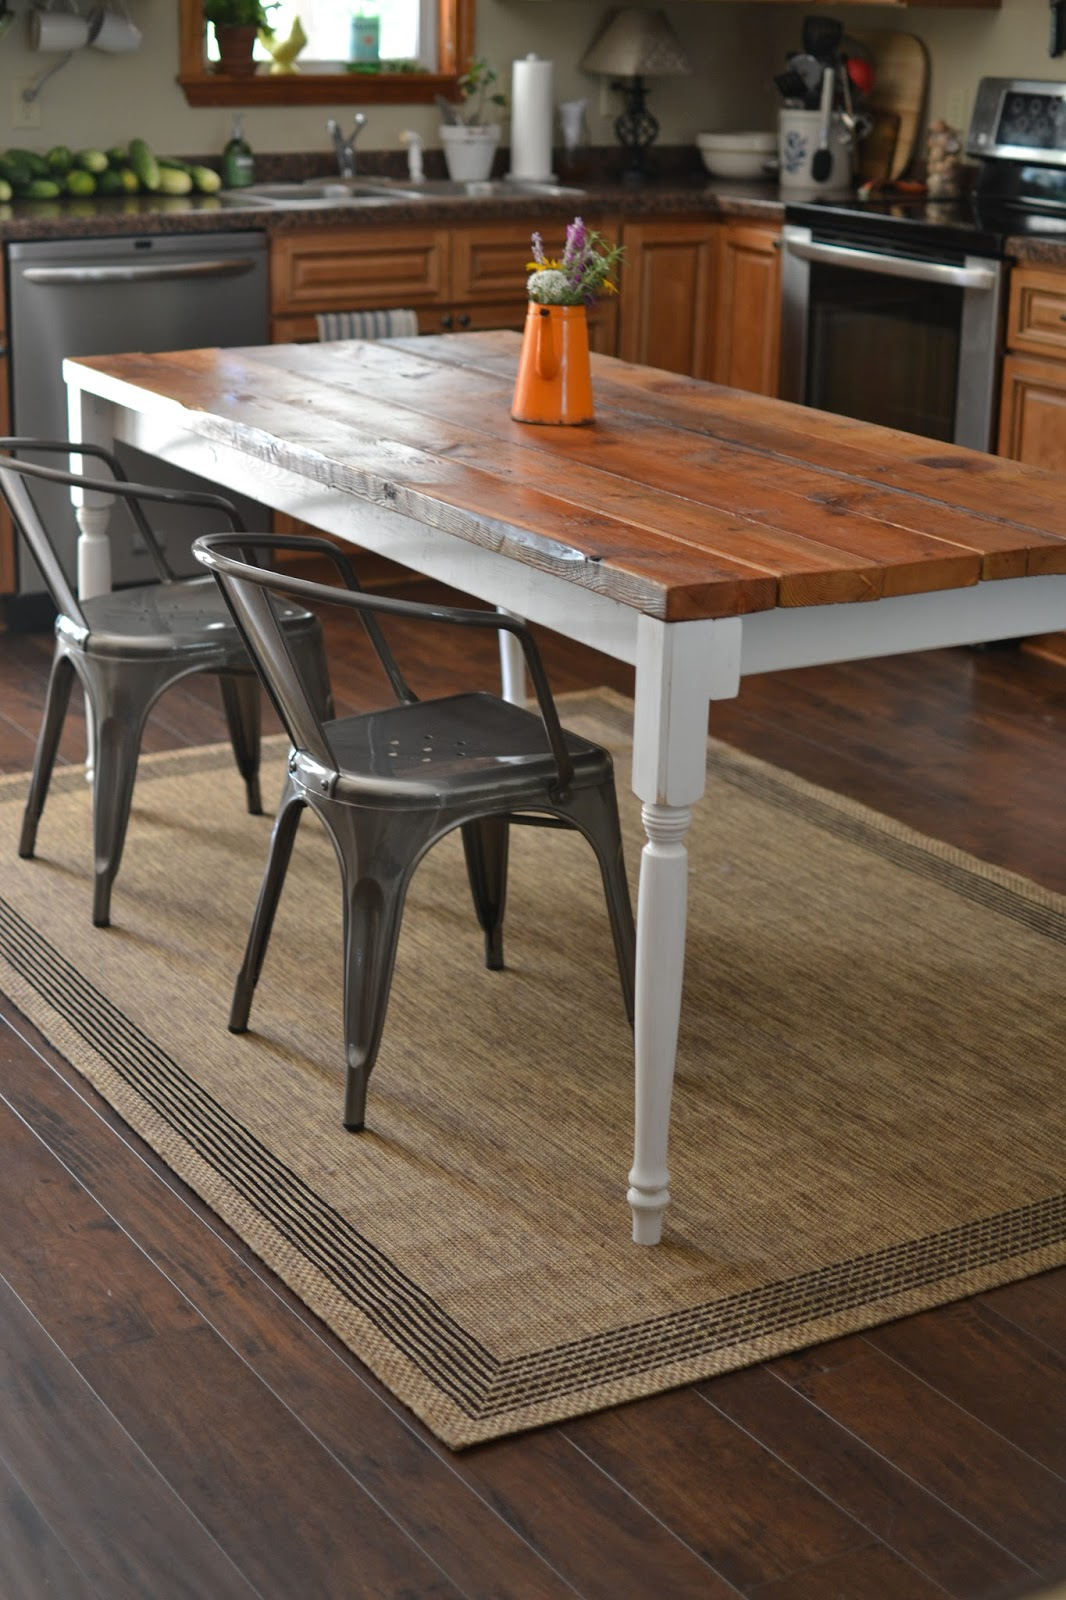 Our Neck of the Woods Reclaimed Wood Farmhouse Table